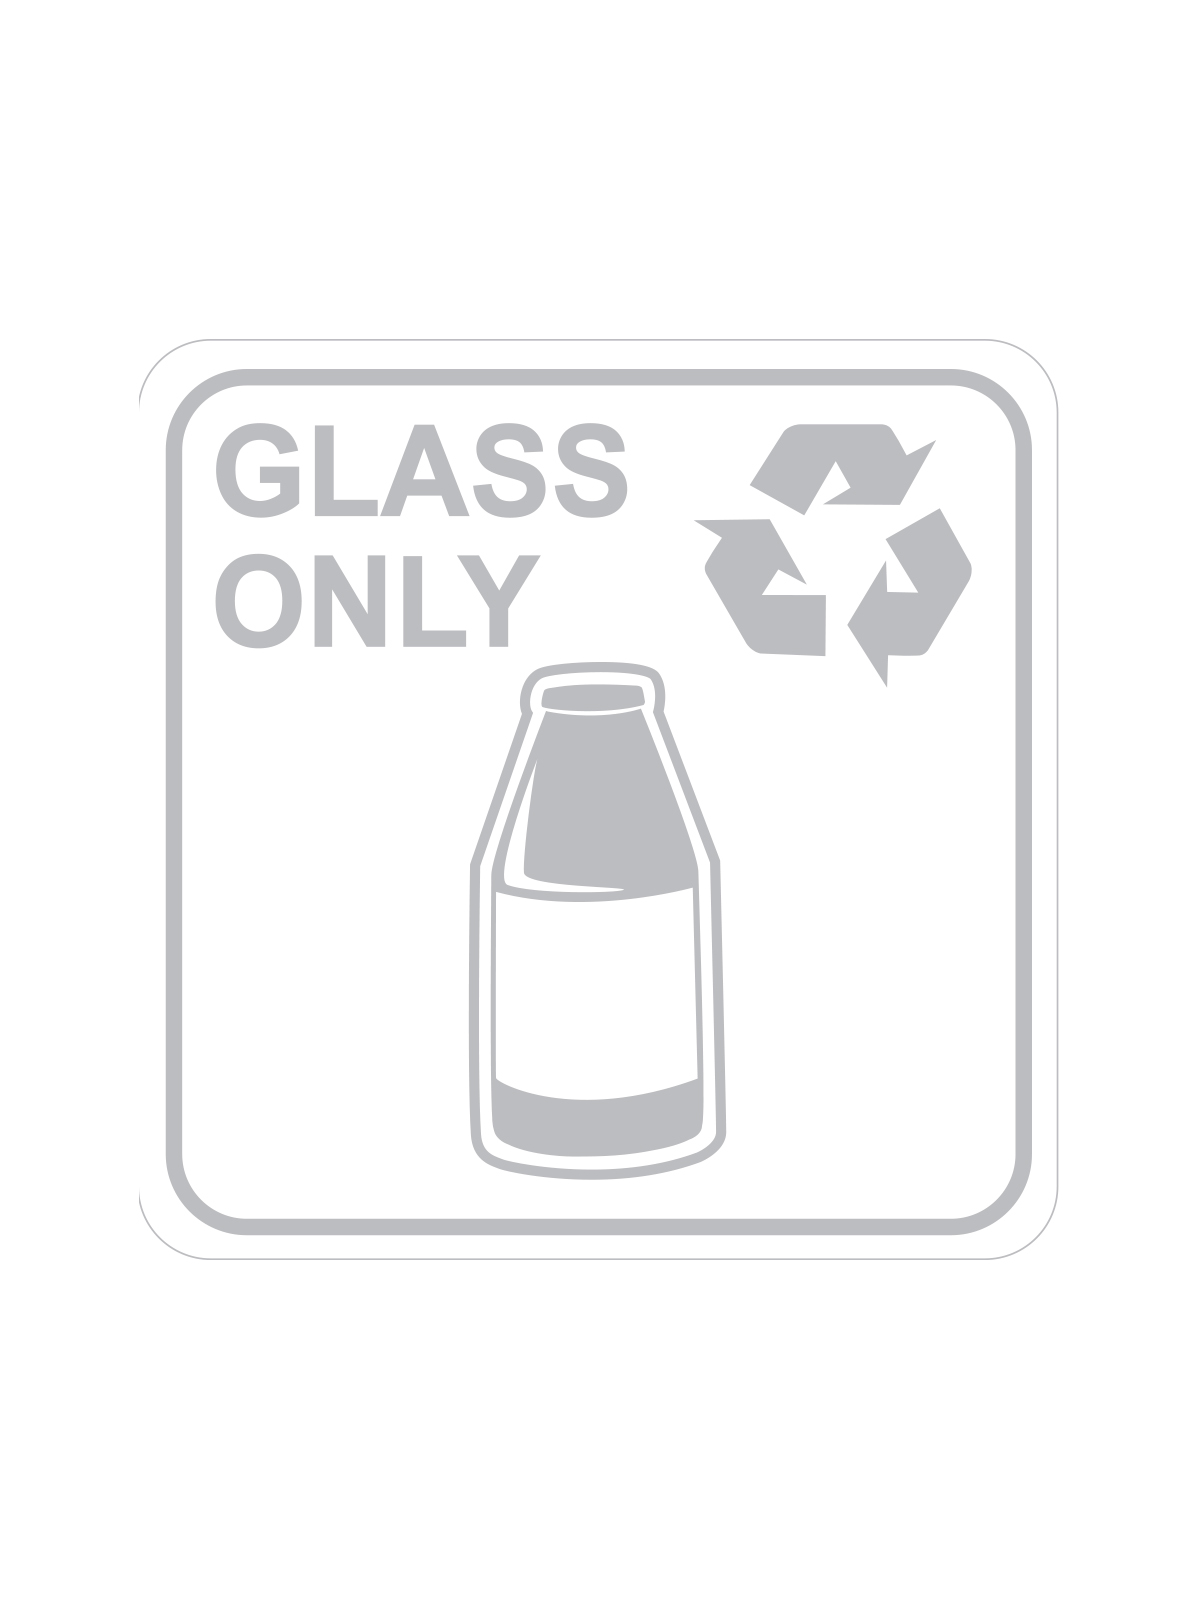 SQUARE LABEL GLASS ONLY